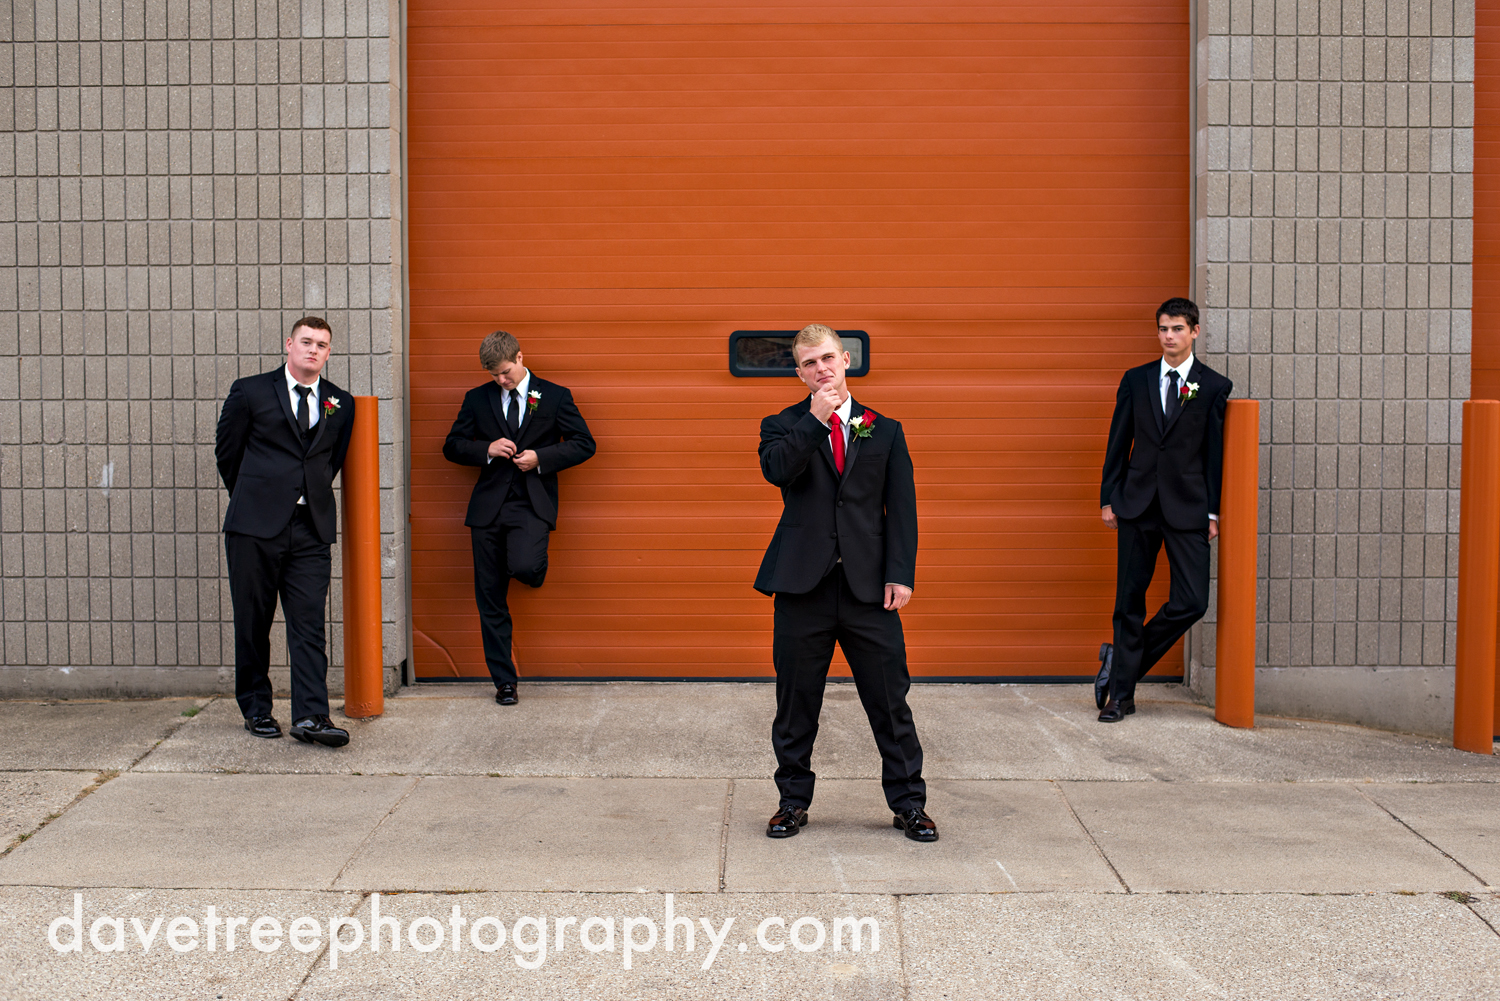 holland_wedding_photographer_63.jpg